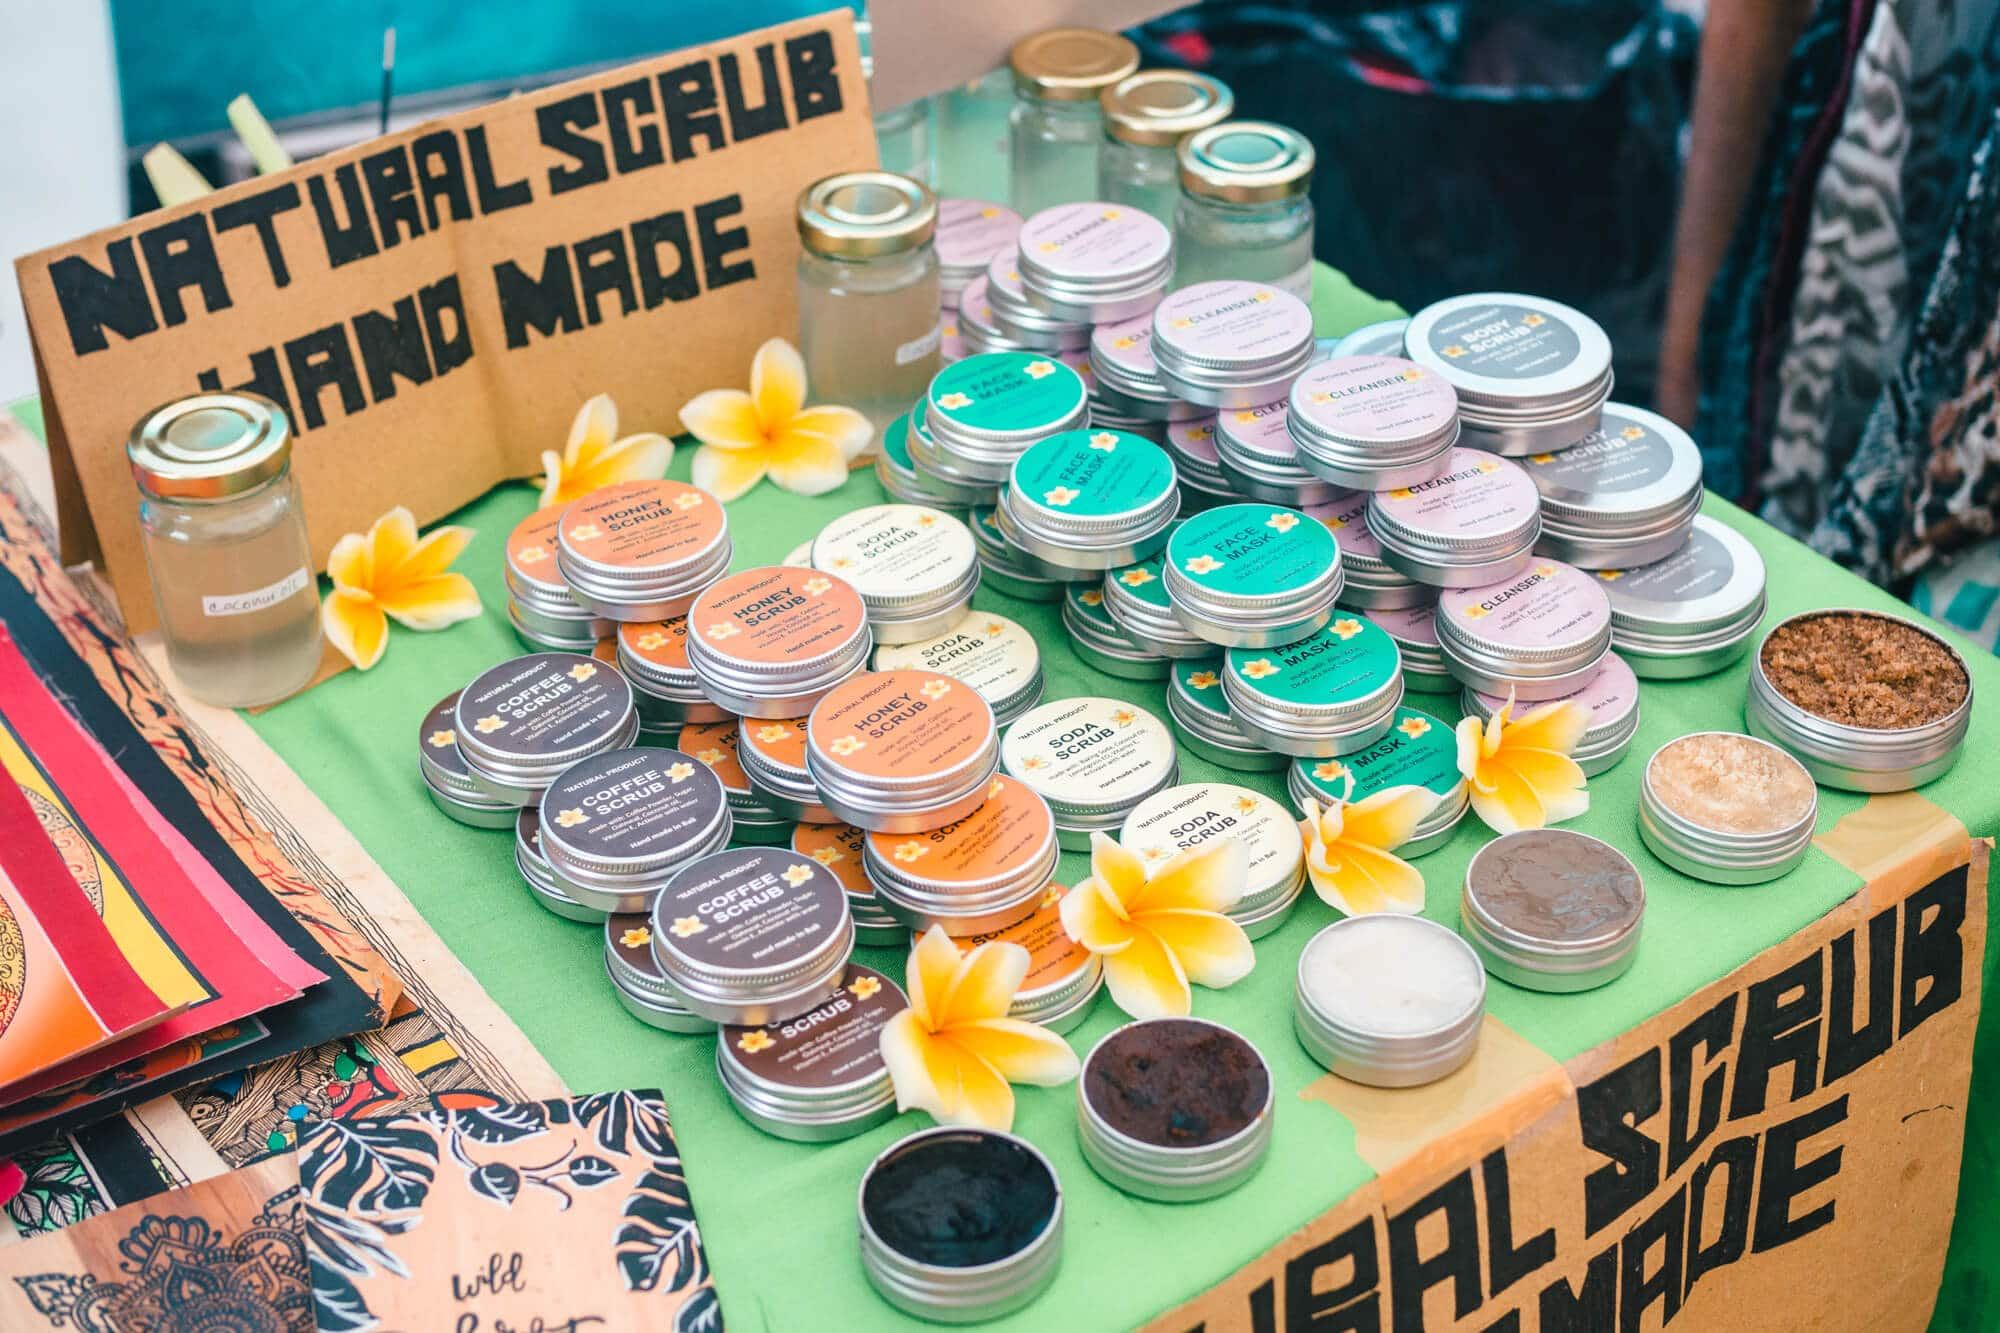 3 super cool markets in Canggu, Bali where you can buy jewelry, organic food, natural skin care, vintage clothing and other beautiful handicrafts - Love Anchor Weekend Bazar